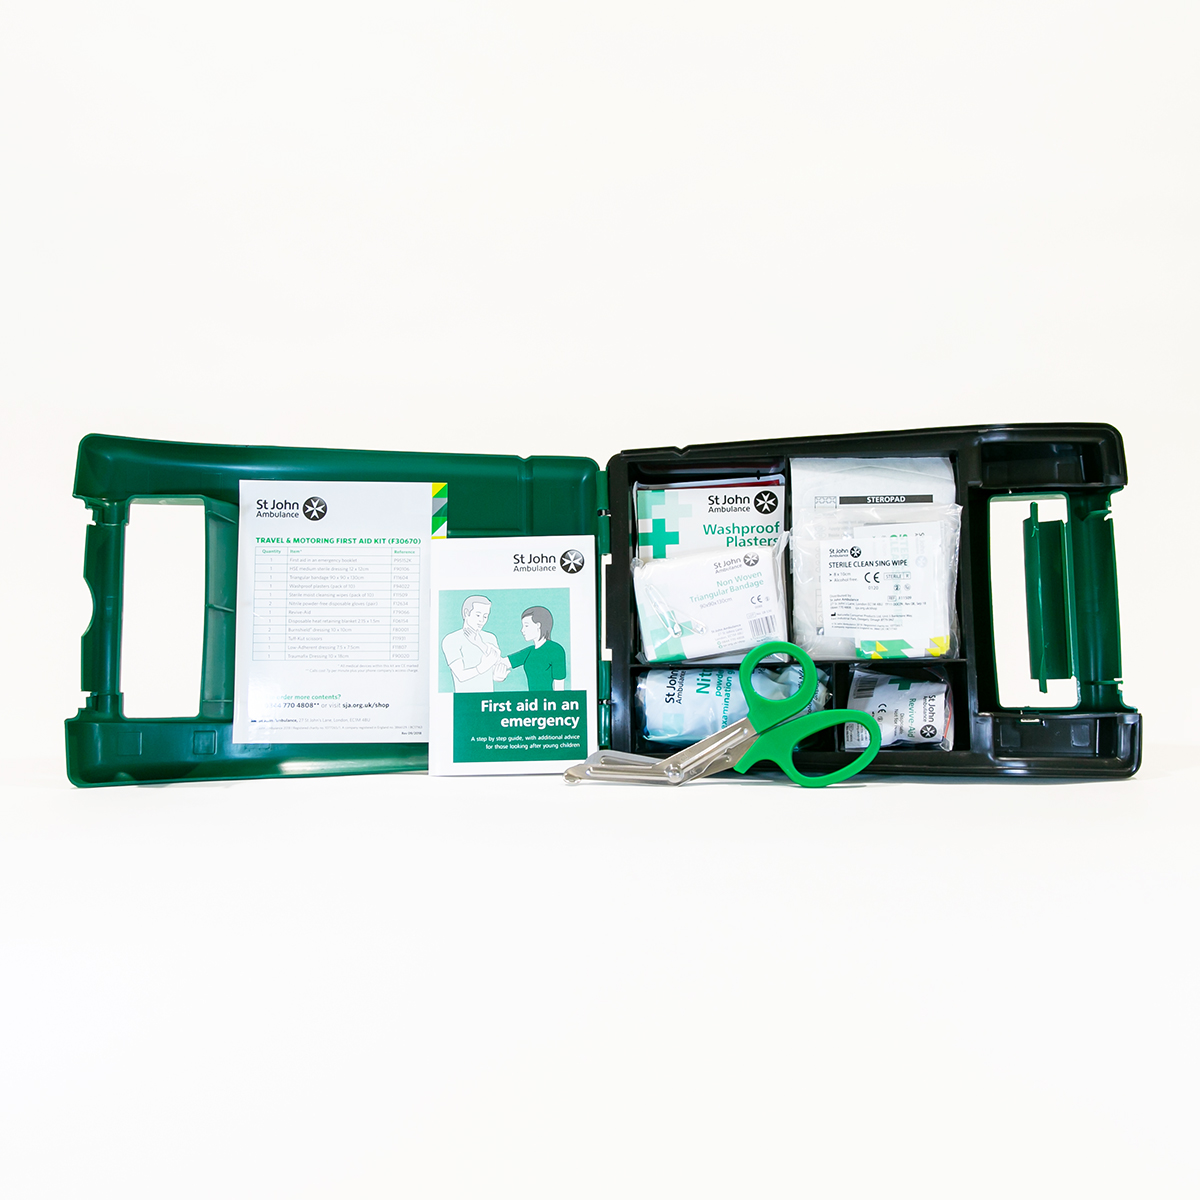 St John Ambulance Alpha Travel and Motoring Workplace First Aid Kit BS 8599-1:2019